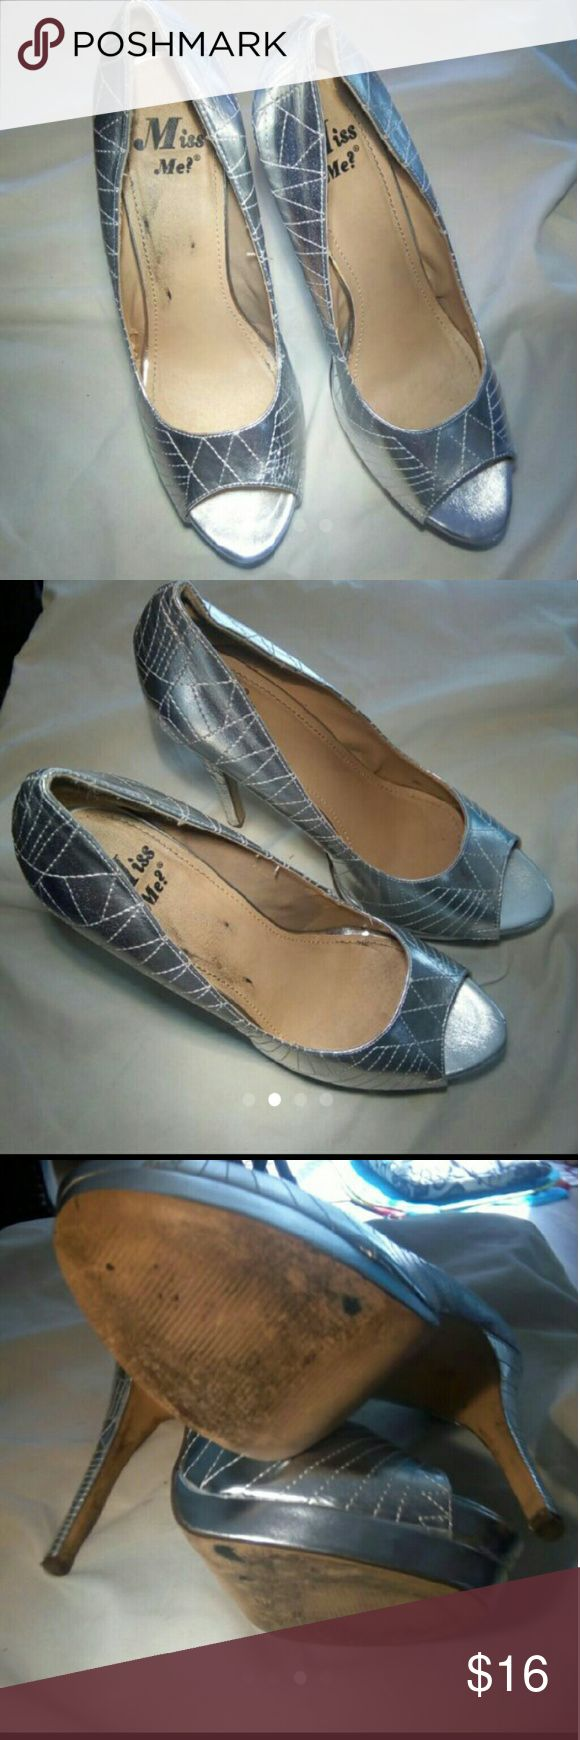 Silver 💋💸👠 miss me heels 💋 size 9 women's These are preloved but still have mileage left the do have a very small amount of peeling inside one shoe but it doesn't affect it very bad at all these have a super Hill for the super daring woman for the perfect night out they are silver a size 9 in the miss me brand shoes make a bundle save a bundle Miss Me Shoes Heels